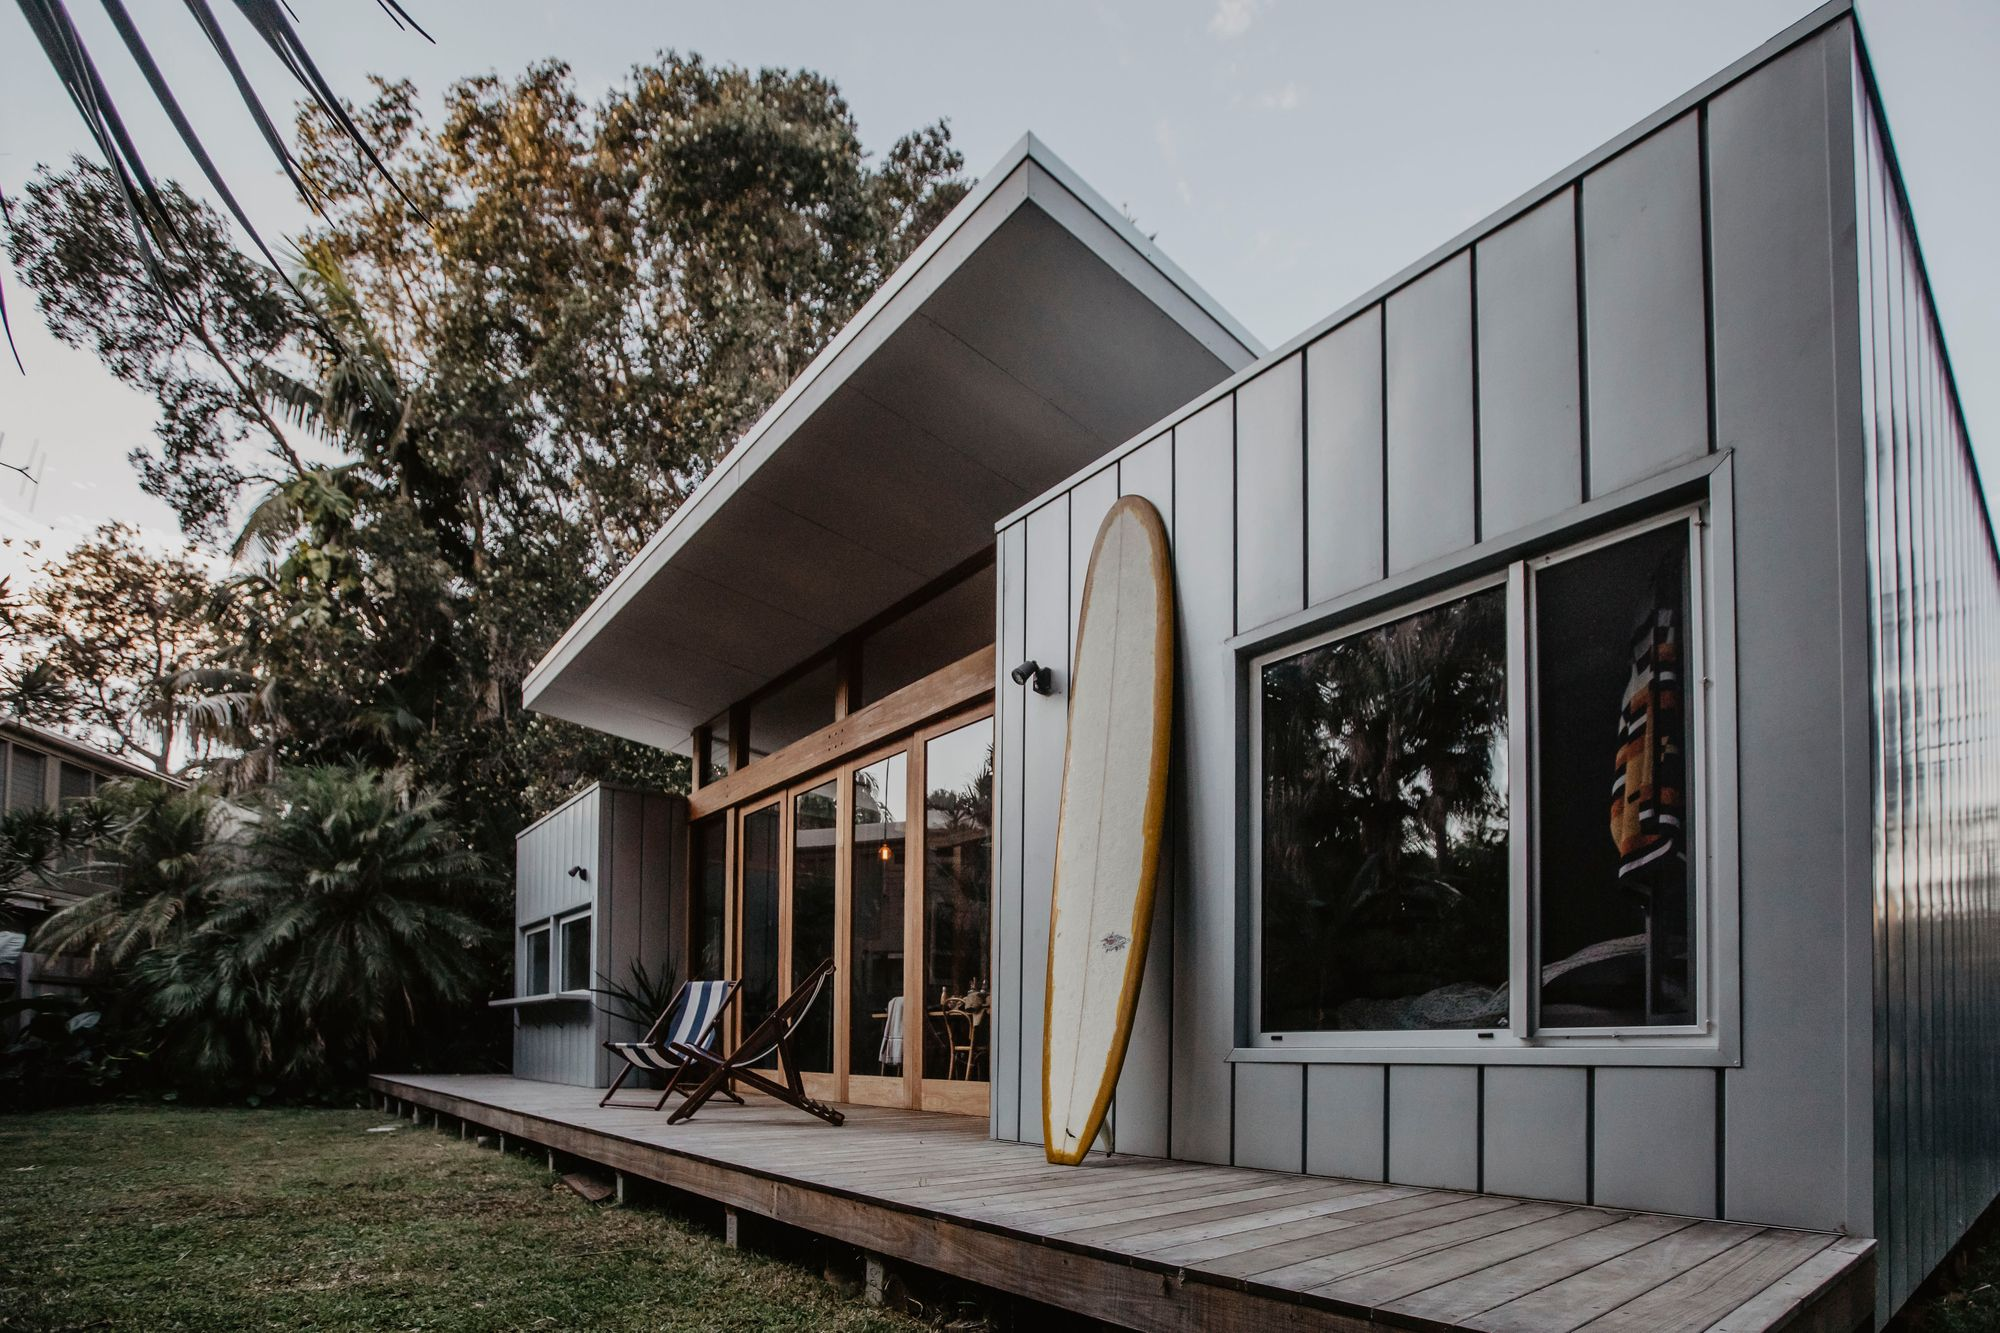 The Bluey S Beach Shack Was An Unreal Little Oasis Of Peace And Quiet Within Walking Distance Of The Beach In 2020 Beach House Exterior Modern Beach House Beach Shack